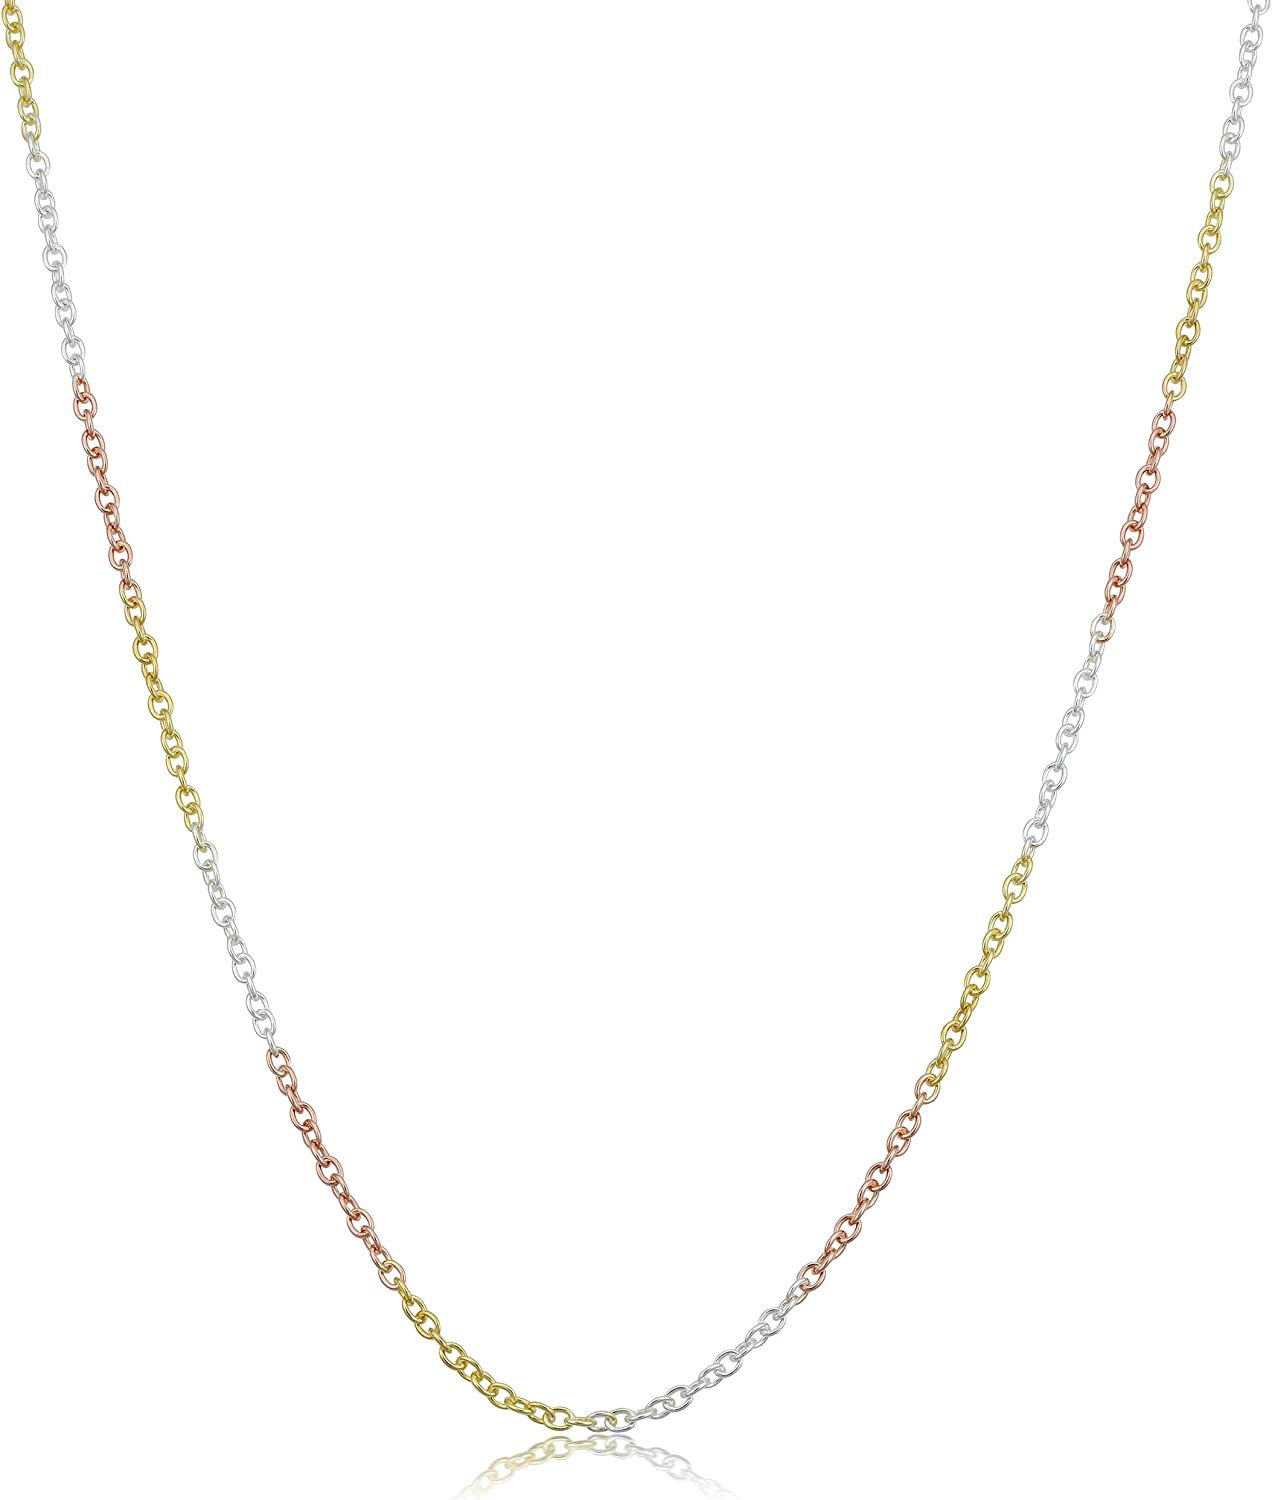 Kooljewelry Tri-color Finally popular brand Sterling Silver Chain 1.5mm Year-end gift Cable Necklace